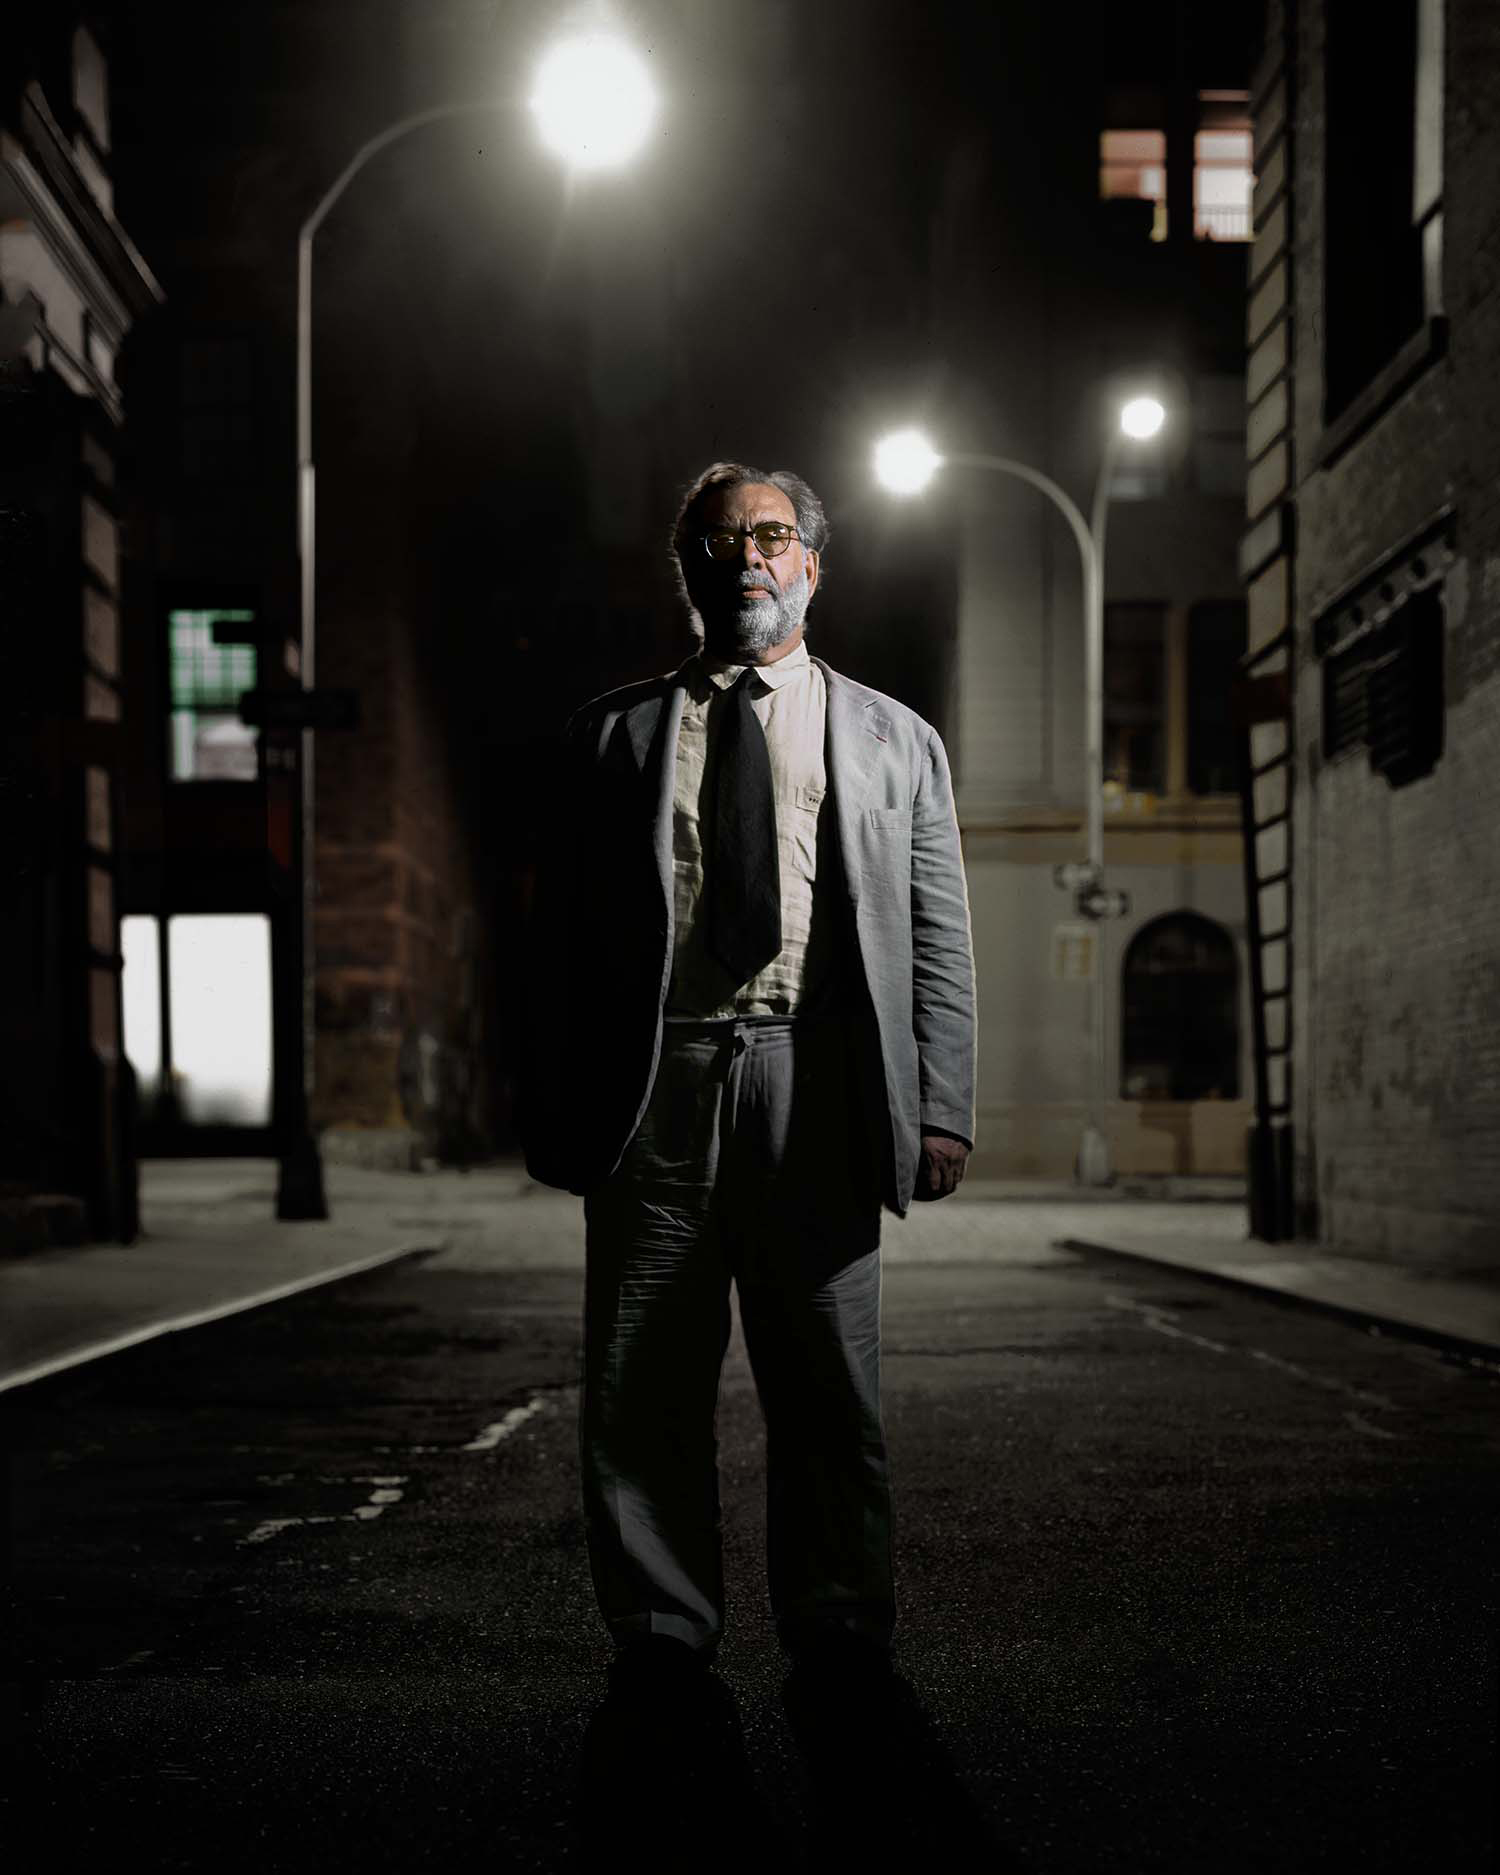 Francis Coppola, alley, Tribeca, New York